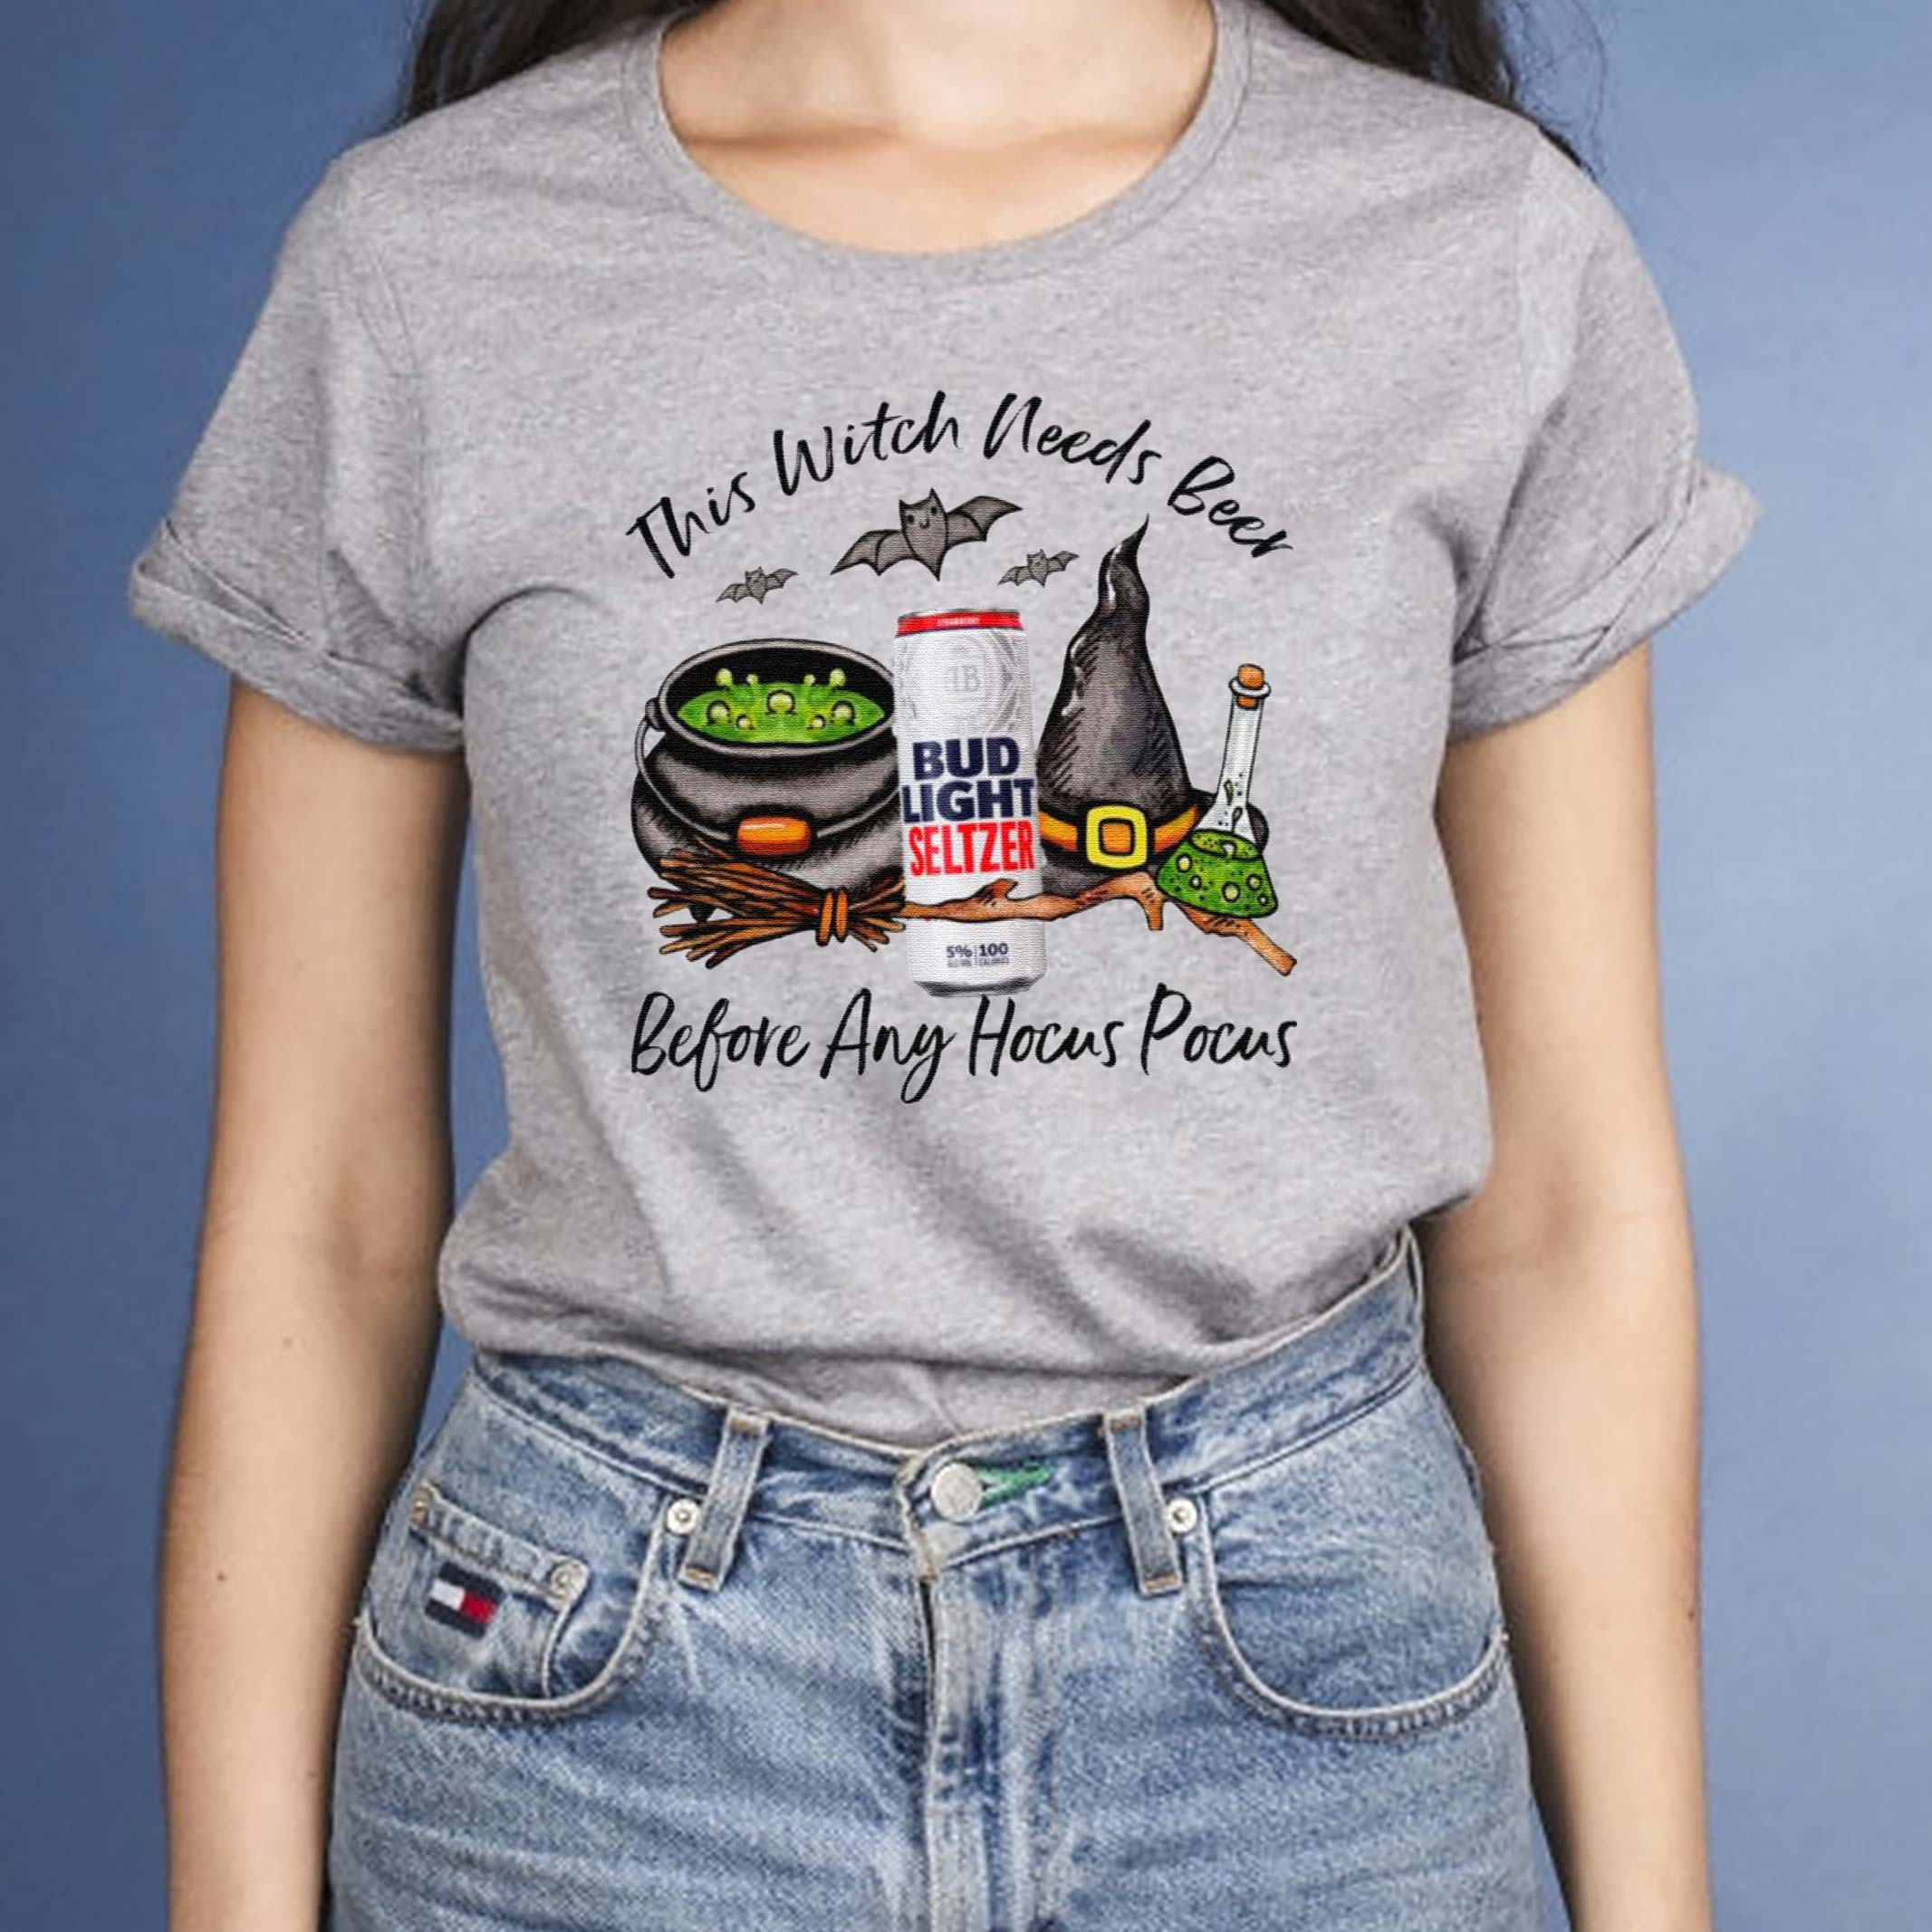 Bud-Light-Seltzer-Strawberry-Can-This-Witch-Needs-Beer-Before-Any-Hocus-Pocus-T-Shirt